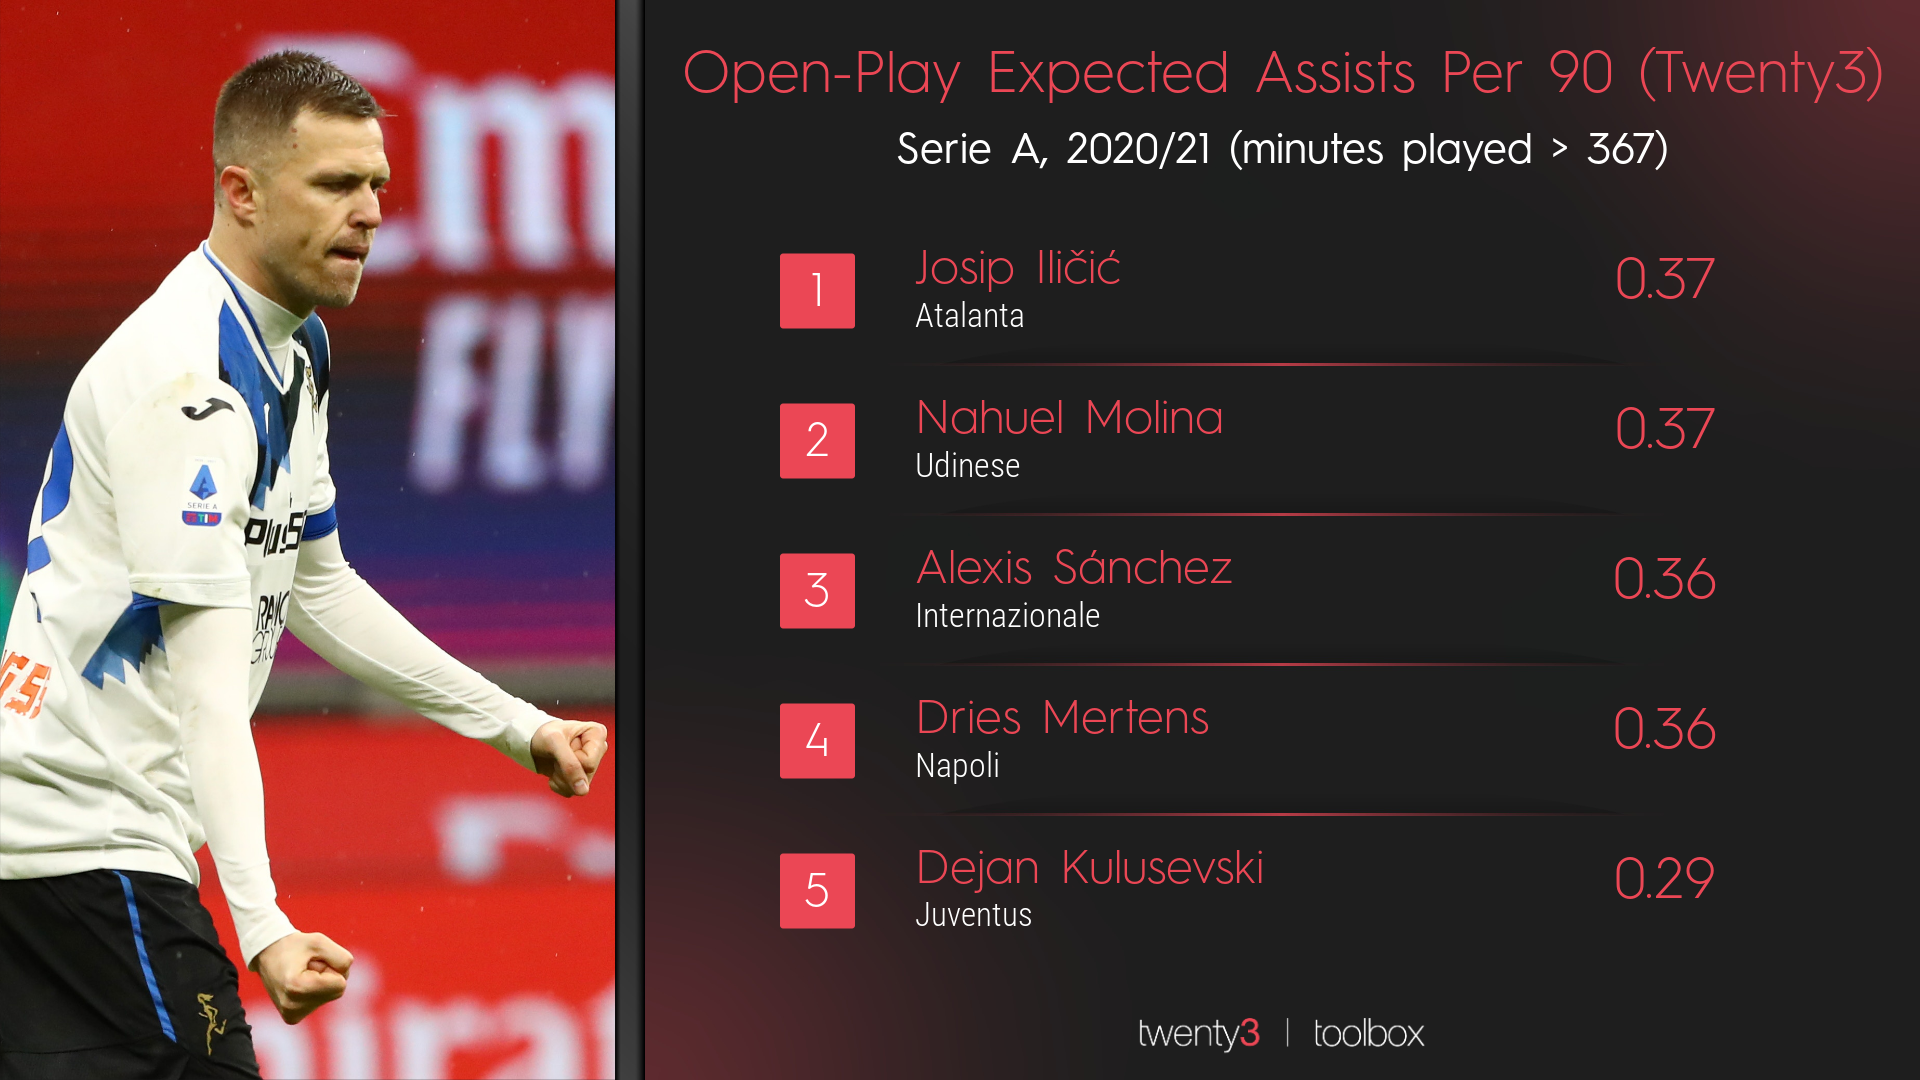 Football metrics: A Twenty3 ranking graphic looking at open-play expected assists in Serie A.